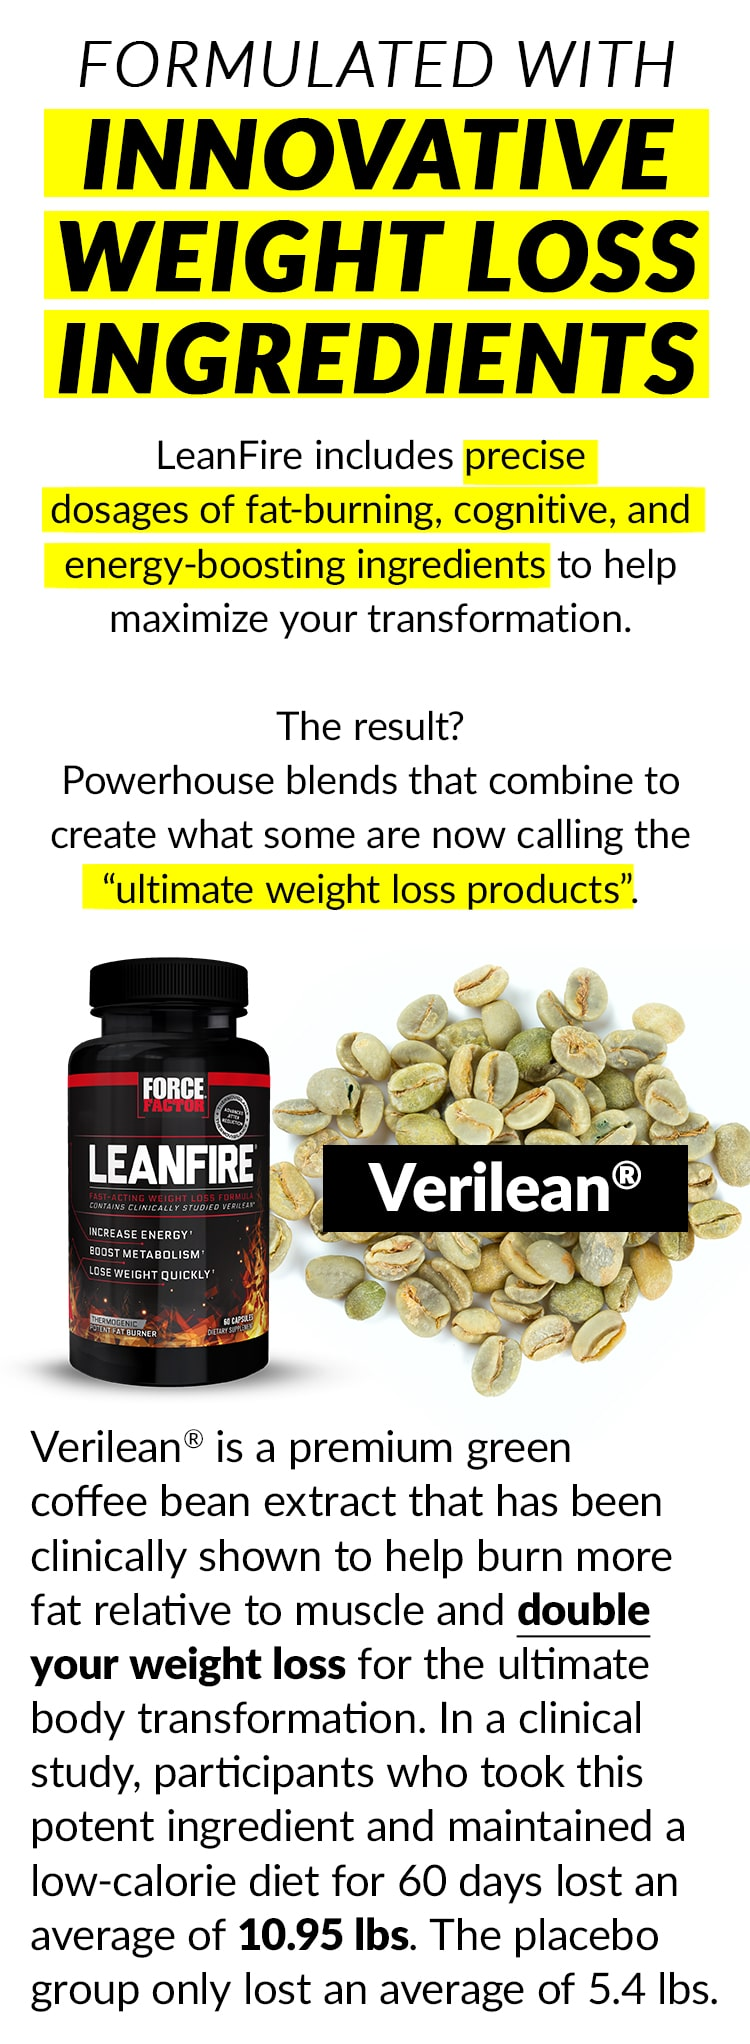 """FORMULATED WITH INNOVATIVE WEIGHT LOSS INGREDIENTS. LeanFire includes precise doses of fat-burning, cognitive, and energy-boosting ingredients to help maximize your transformation. The result? Powerhouse blends that combine to create what some are now calling the """"ultimate weight loss products"""". Verilean® - Verilean® is a premium green coffee bean extract that has been clinically shown to help burn more fat relative to muscle and double your weight loss for the ultimate body transformation. In a clinical study, participants who took this potent ingredient and maintained a low-calorie diet for 60 days lost an average of 10.95 lbs. The placebo group only lost an average of 5.4 lbs."""